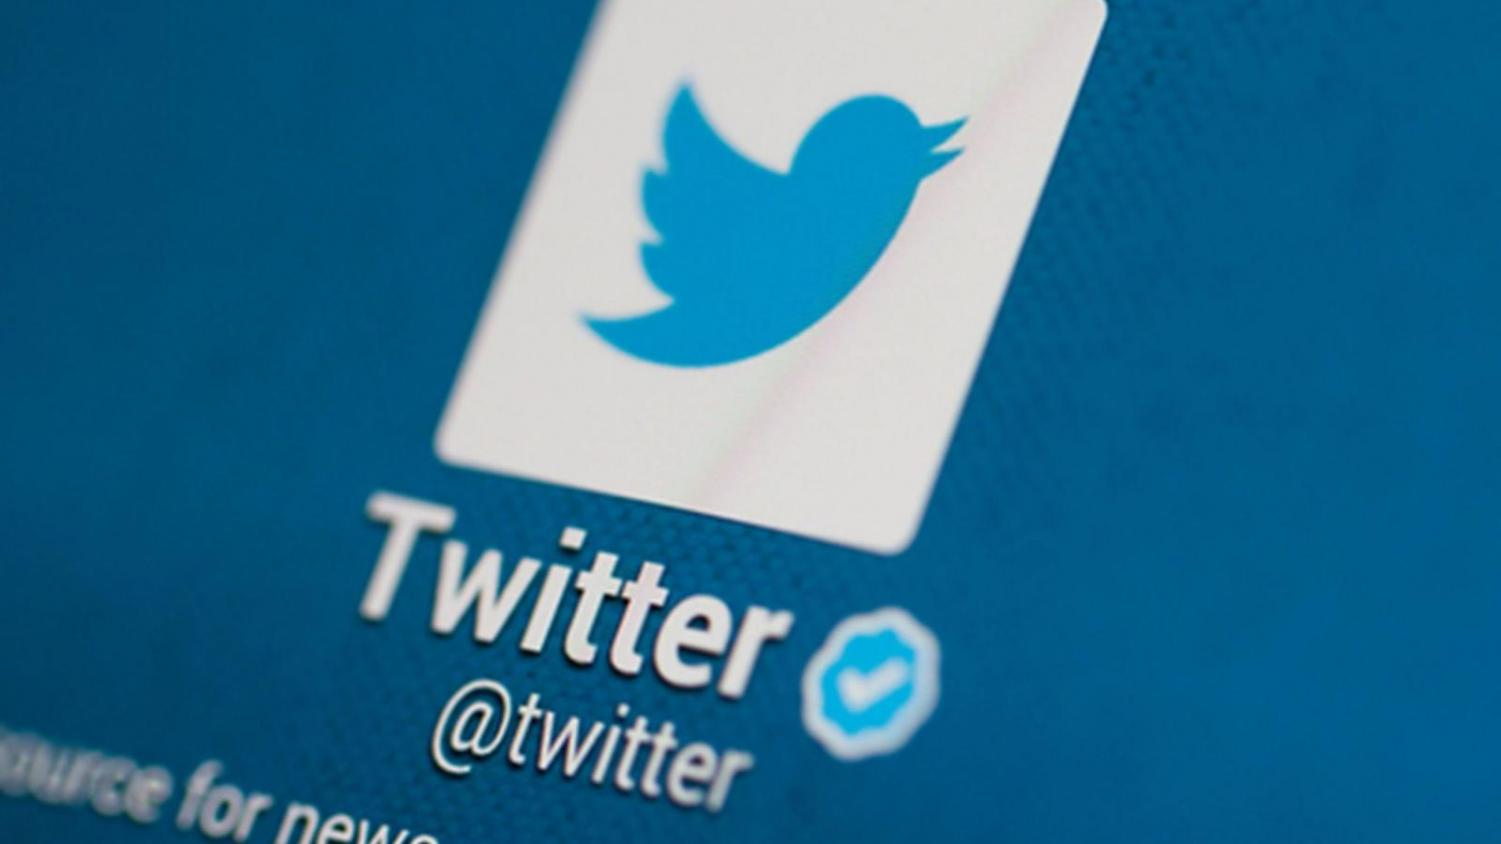 The New York Times released a story that exposed an American company that sells and distributes fake Twitter followers. (Dreamstime/TNS)